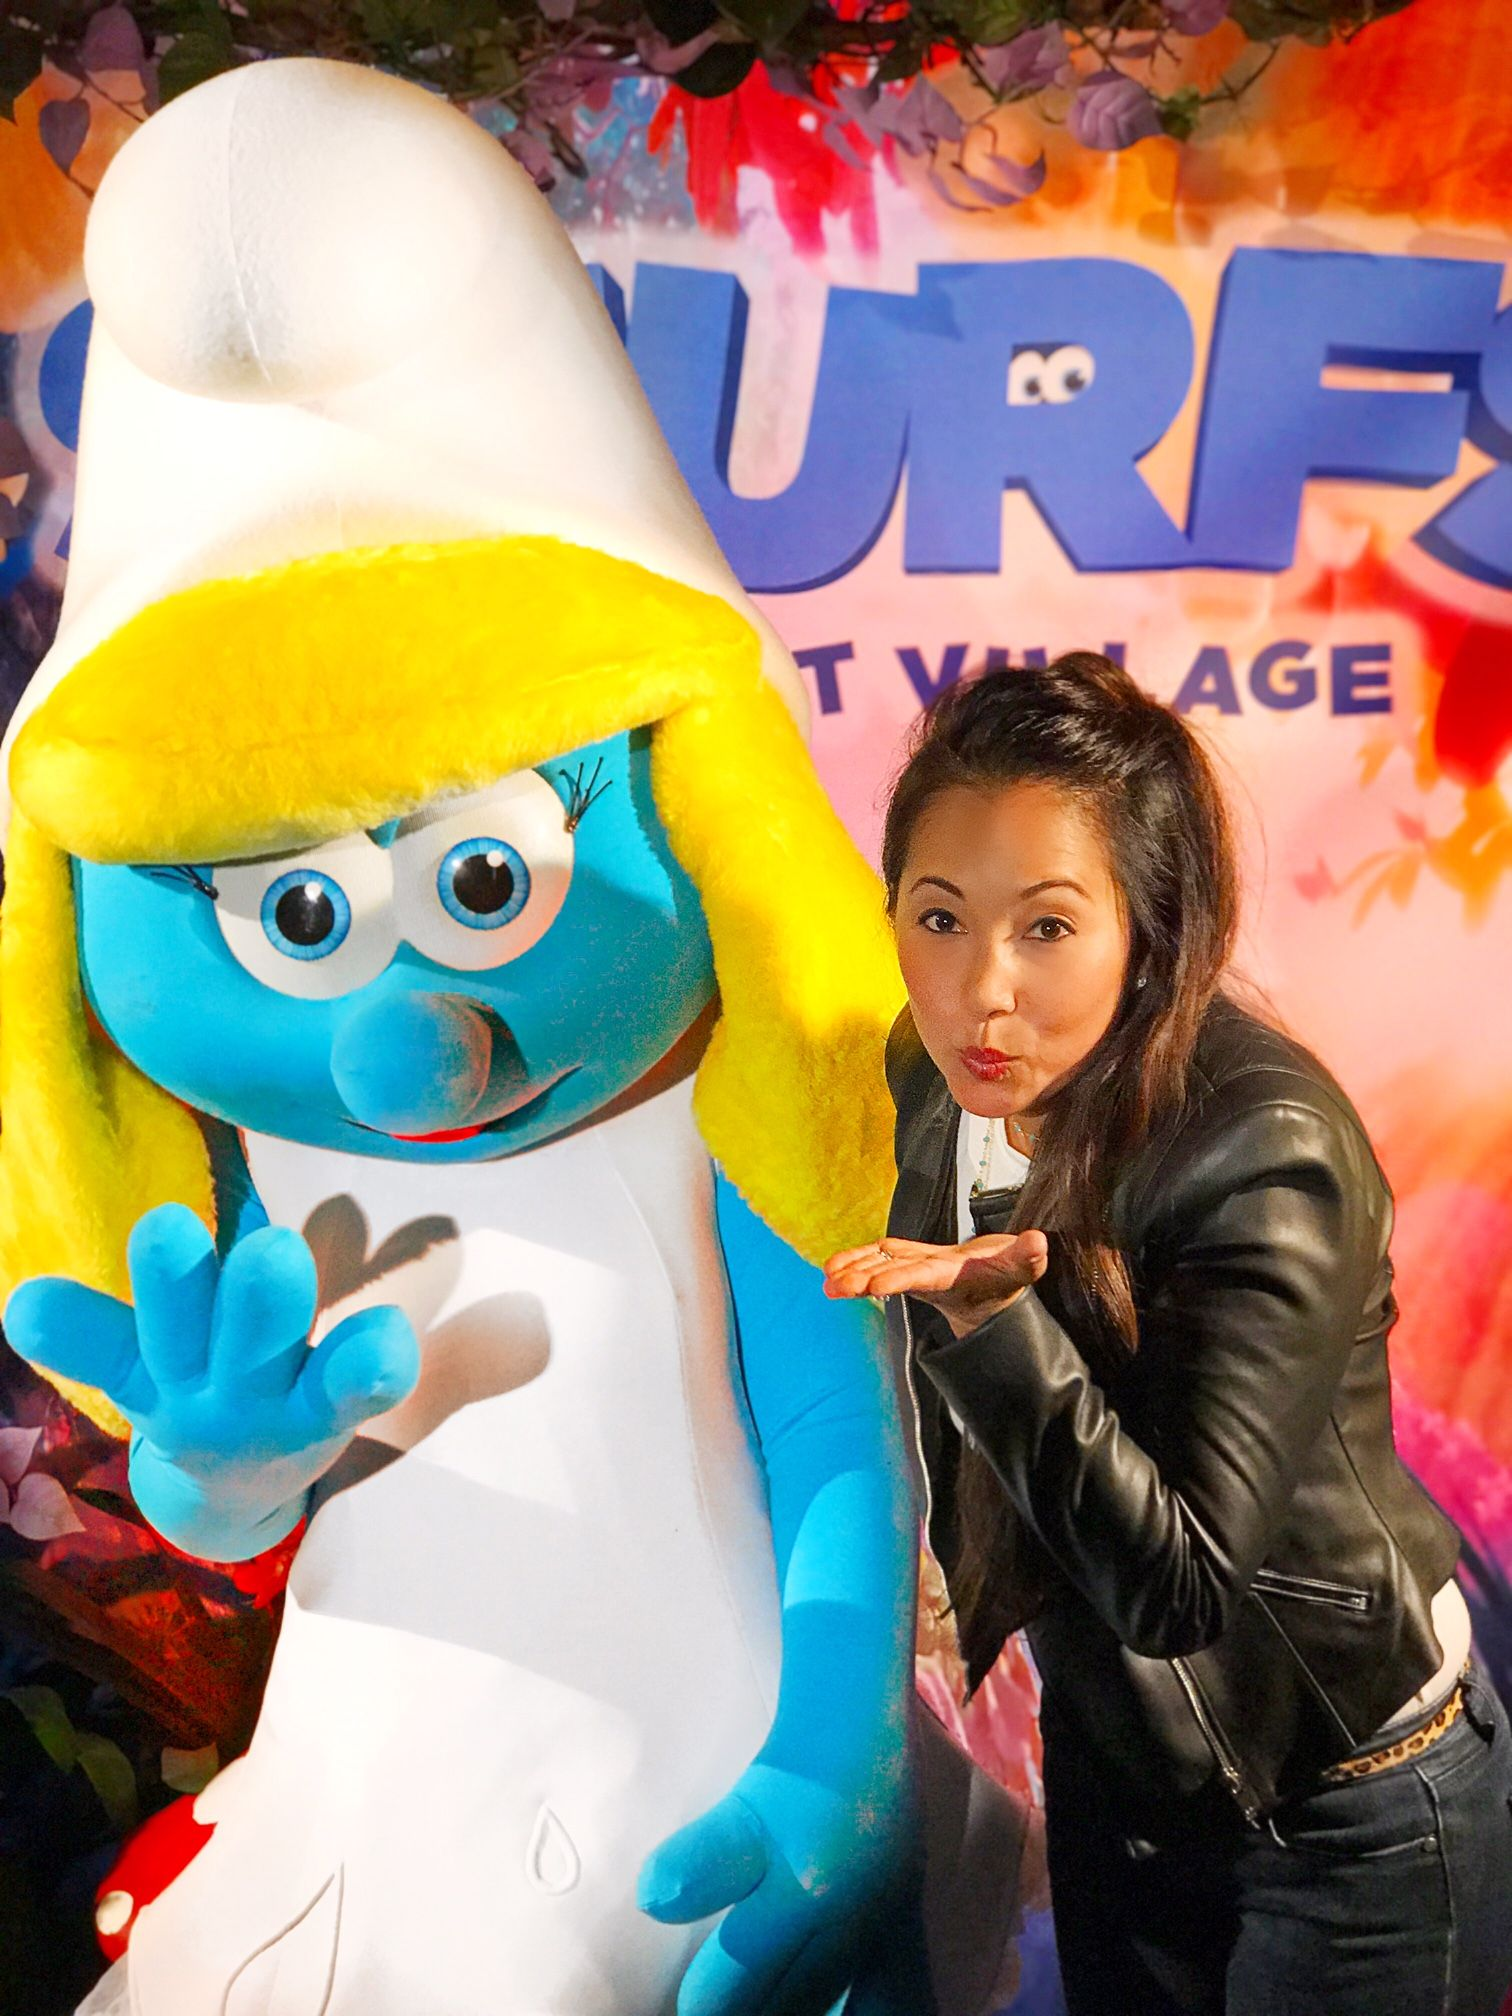 Saturday April 1st, my little family and I headed to the latest Sony Pictures movie Smurfs: The Lost Village for the world premiere in Downtown Culver City. Well Downtown Culver City was completely redone to look we walked right into a Smurf Village. As we checked in, we were given a selection of Smurfs hats …